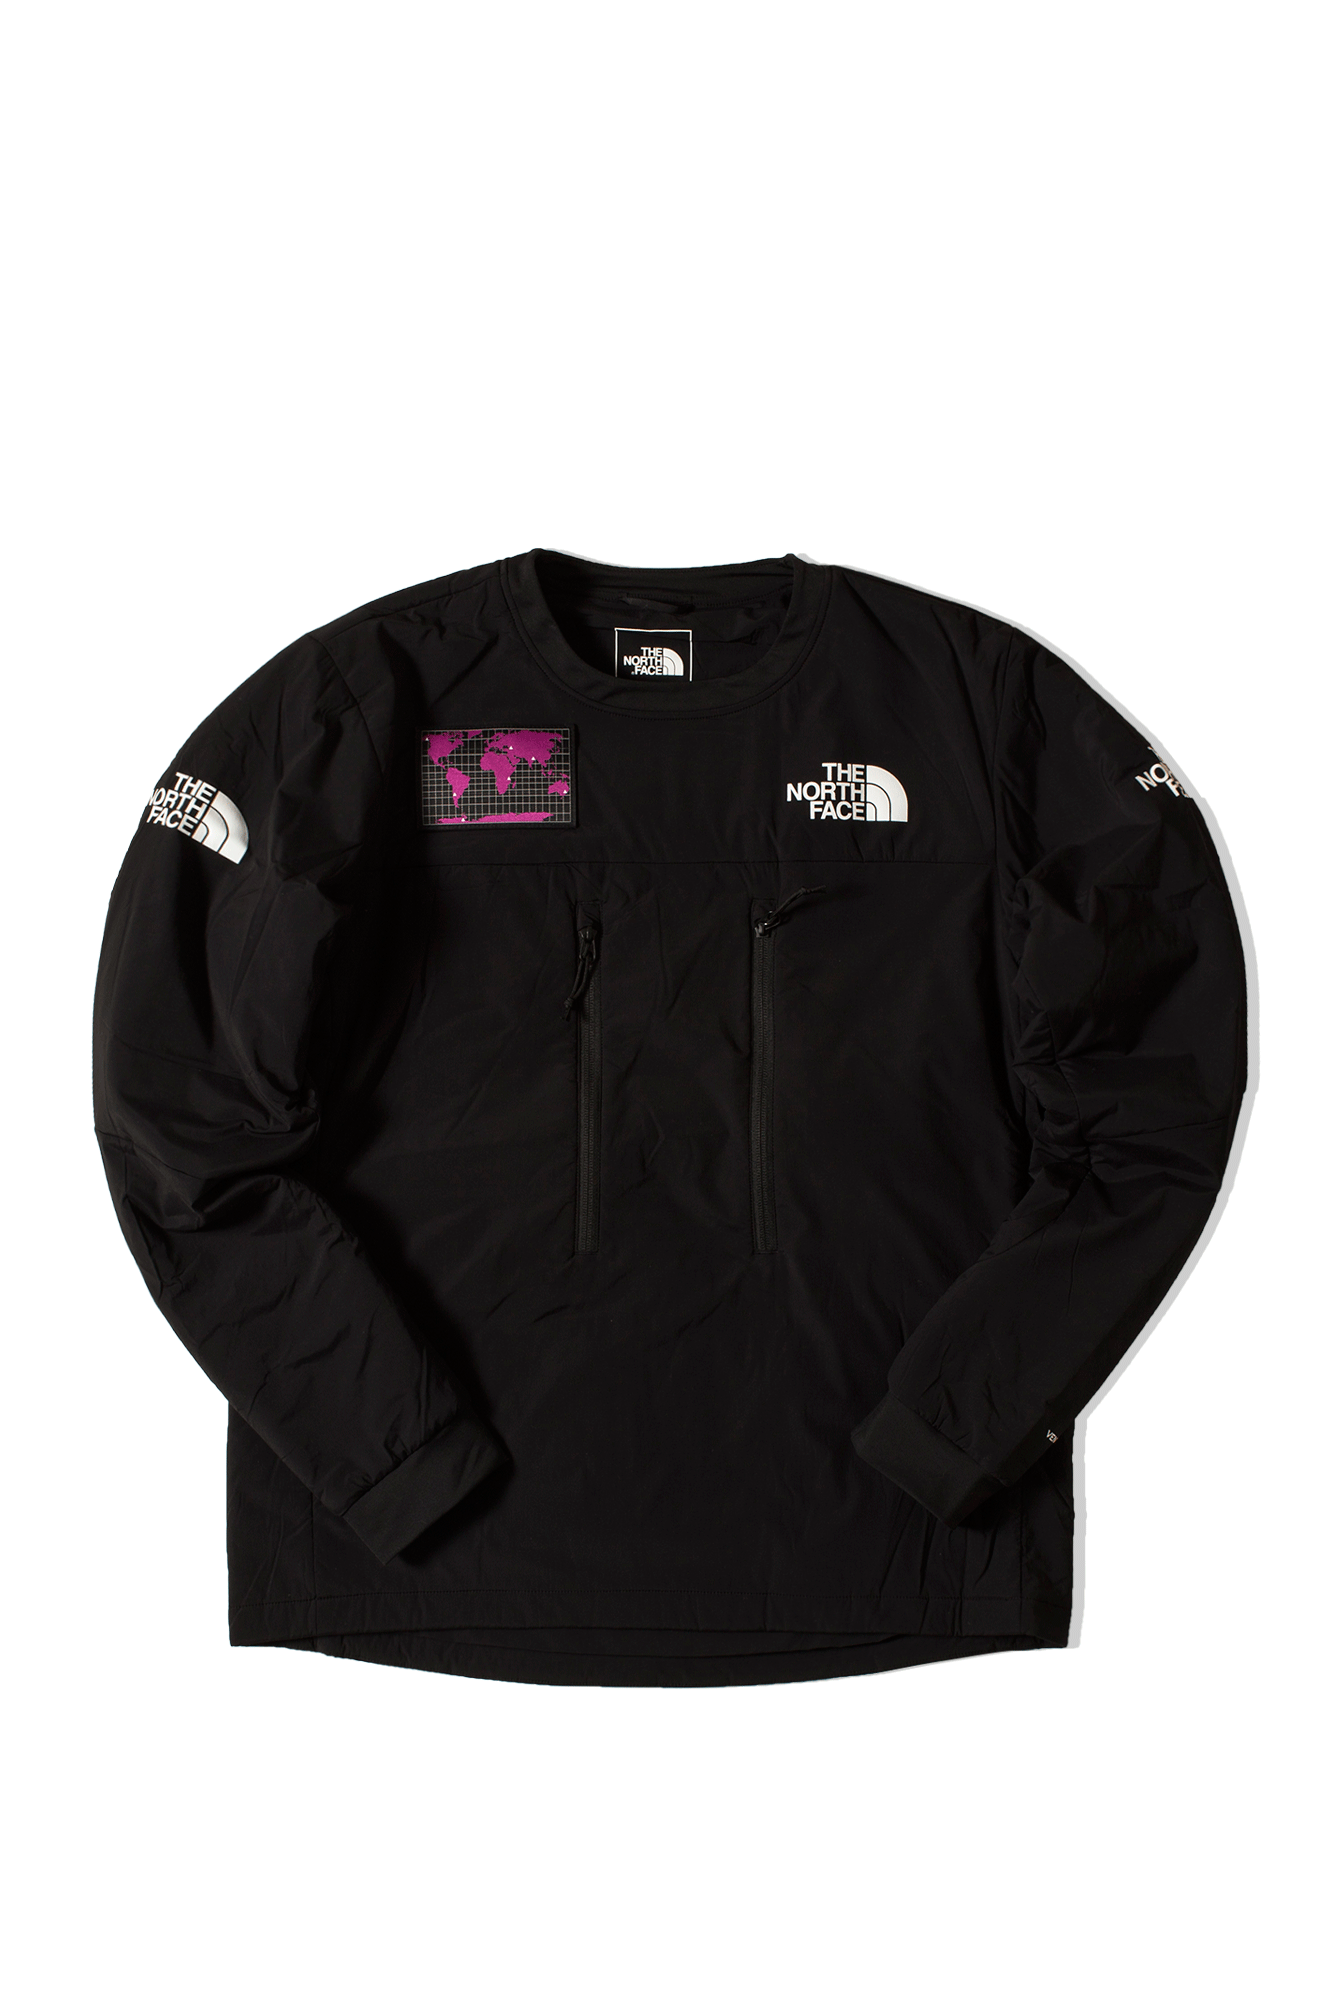 The North Face Sweaters M Him Light Ventrix Crew Black NF0A4AIRJ#000#K31#S - One Block Down